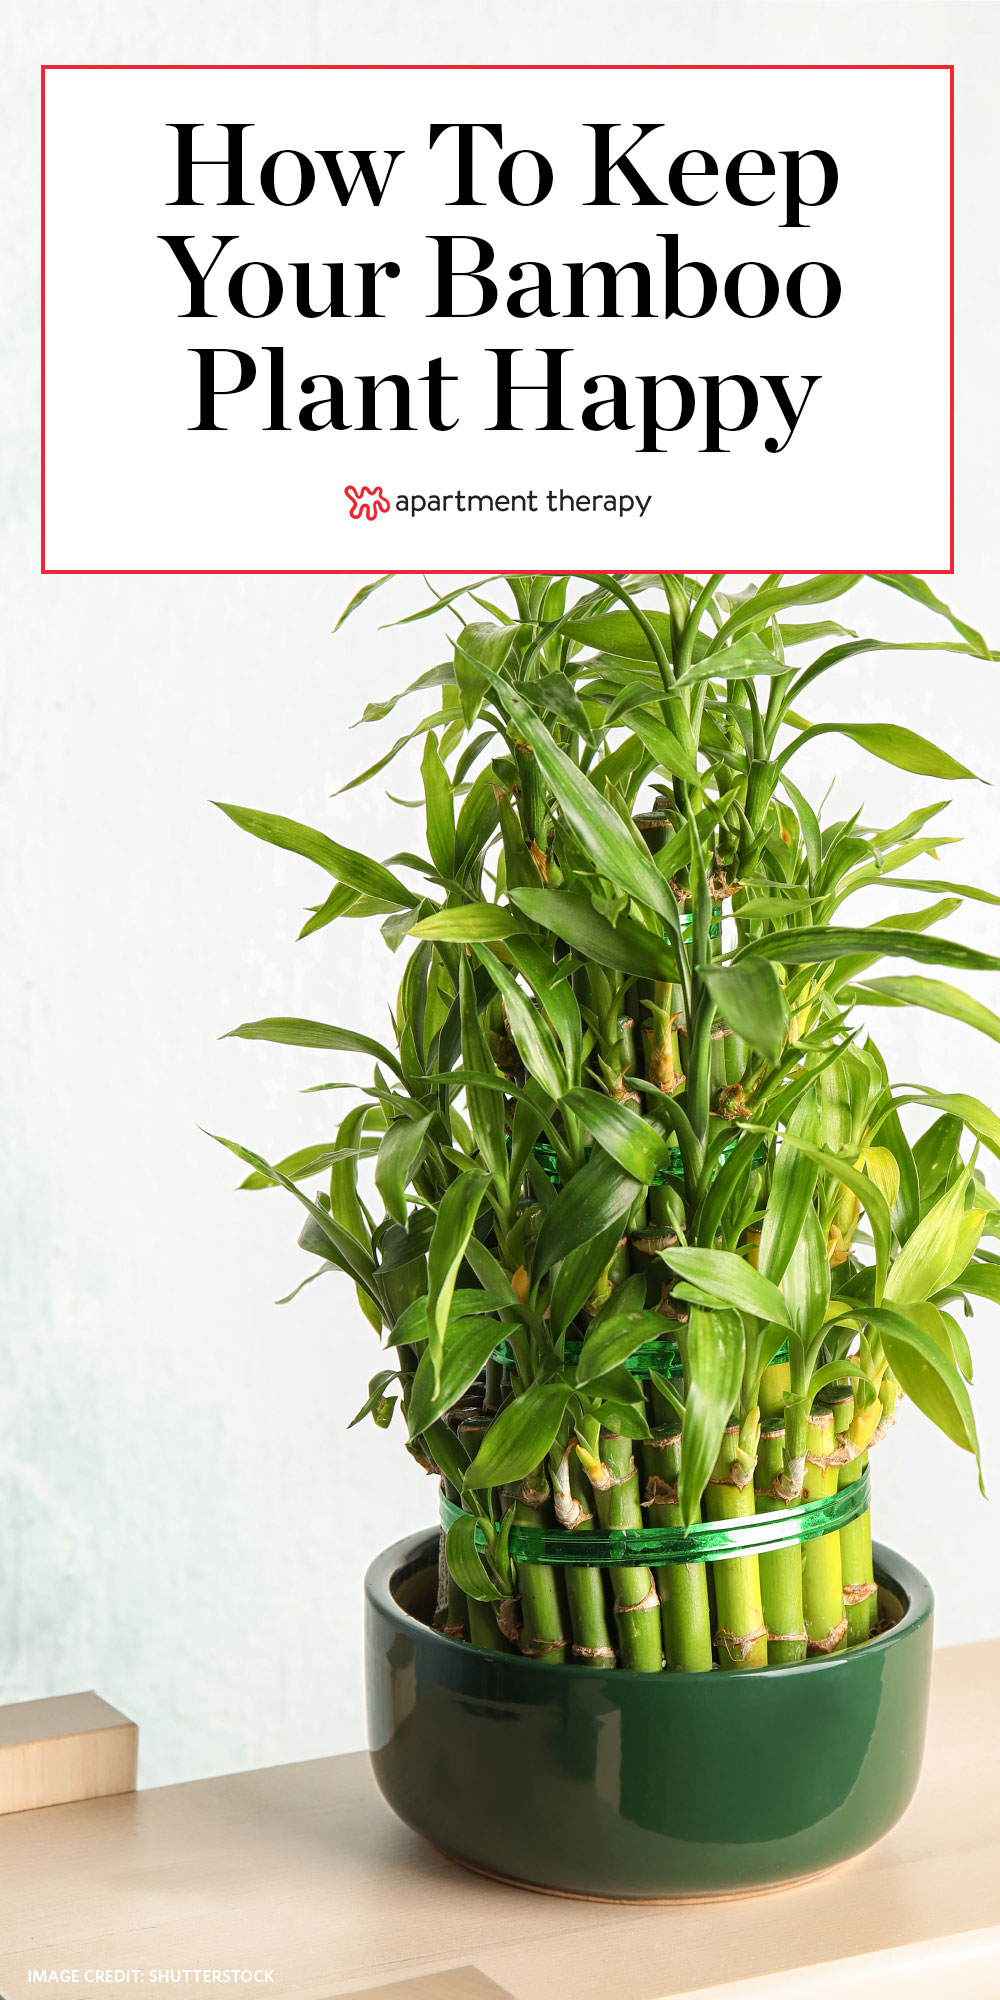 Bamboo Plant Care How To Grow Maintain Bamboo Plants Apartment Therapy